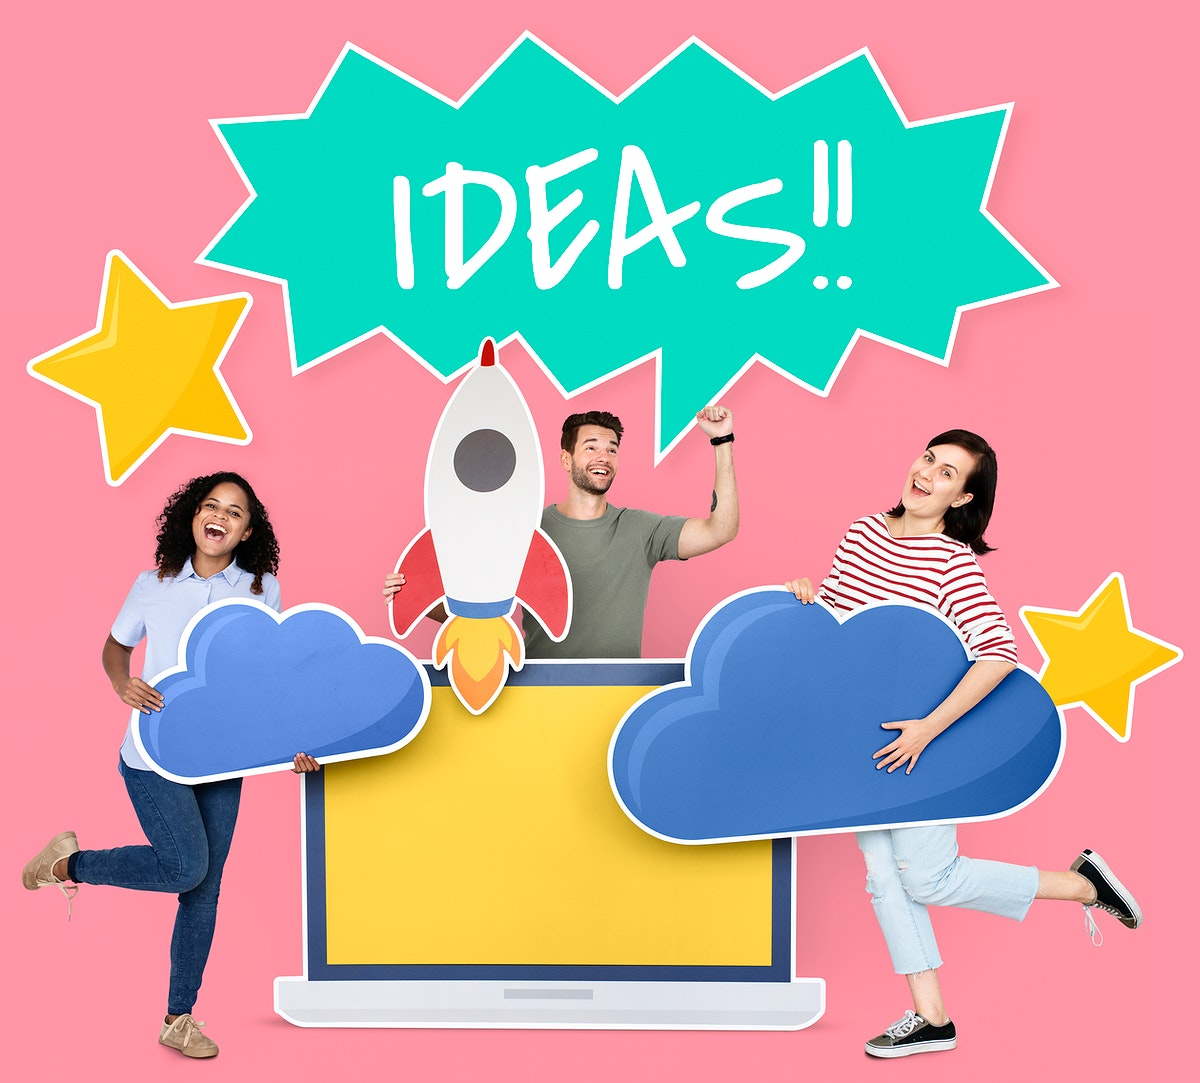 People holding creative ideas and cloud computing icons